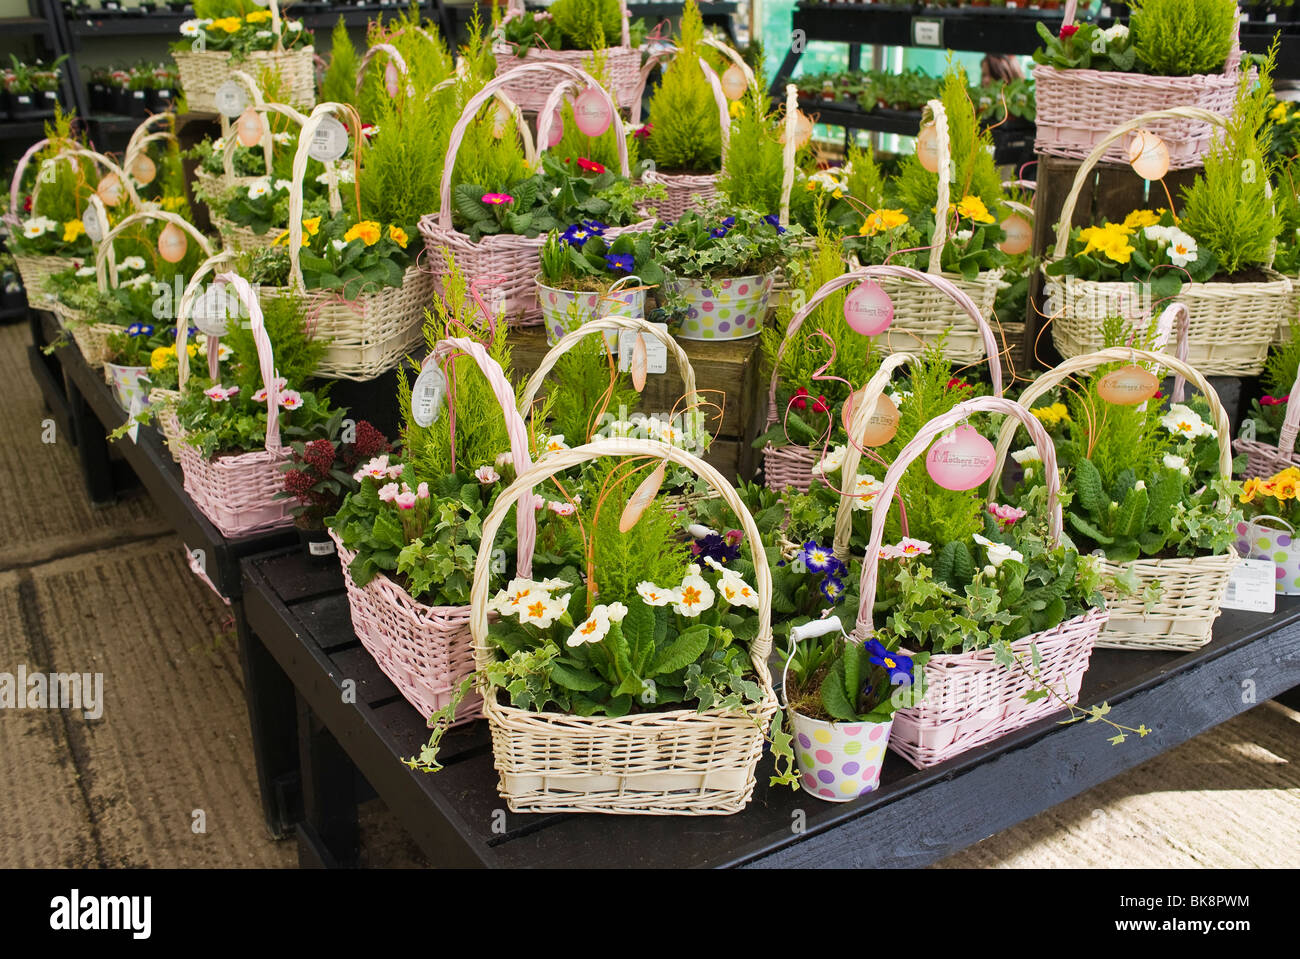 Baskets Of Spring Flowers For Sale On Mothers Day In A Garden Centre